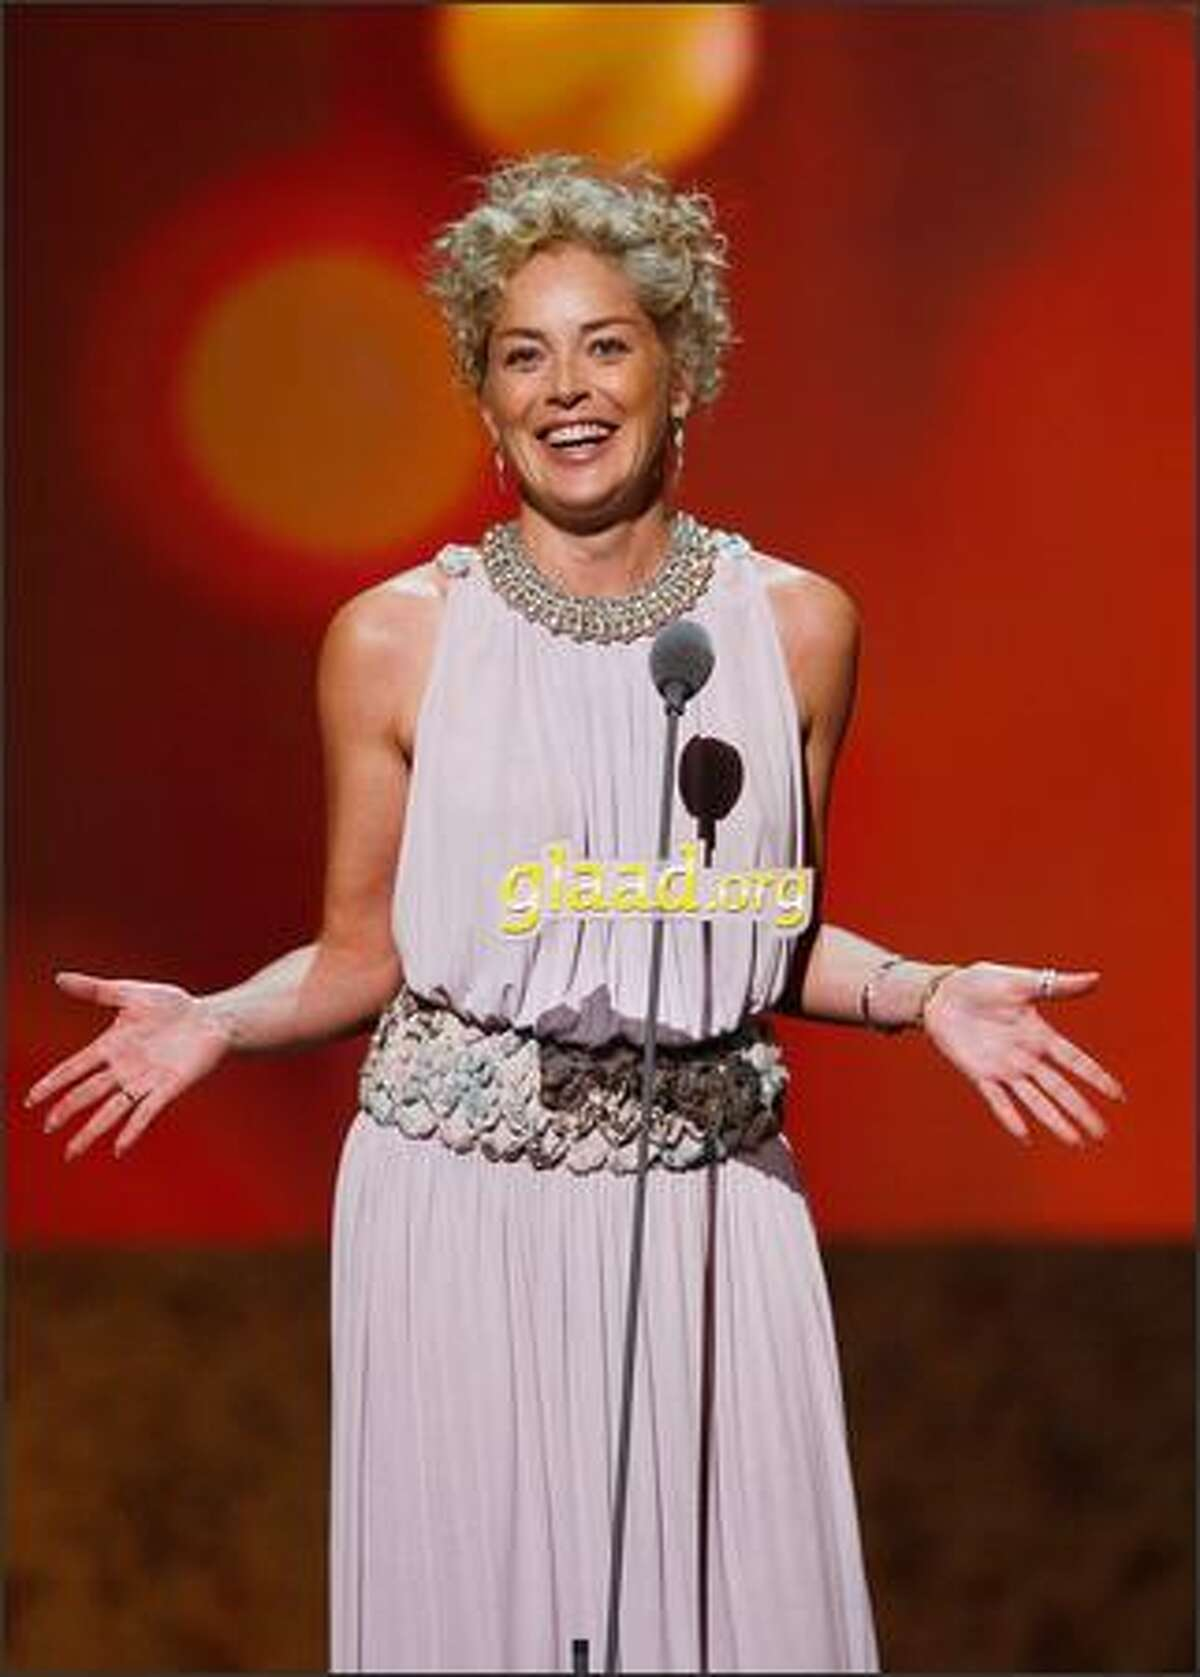 Actress Sharon Stone speaks onstage at the 19th Annual GLAAD Media Awards on April 26, 2008 at the Kodak Theatre in Hollywood, California.